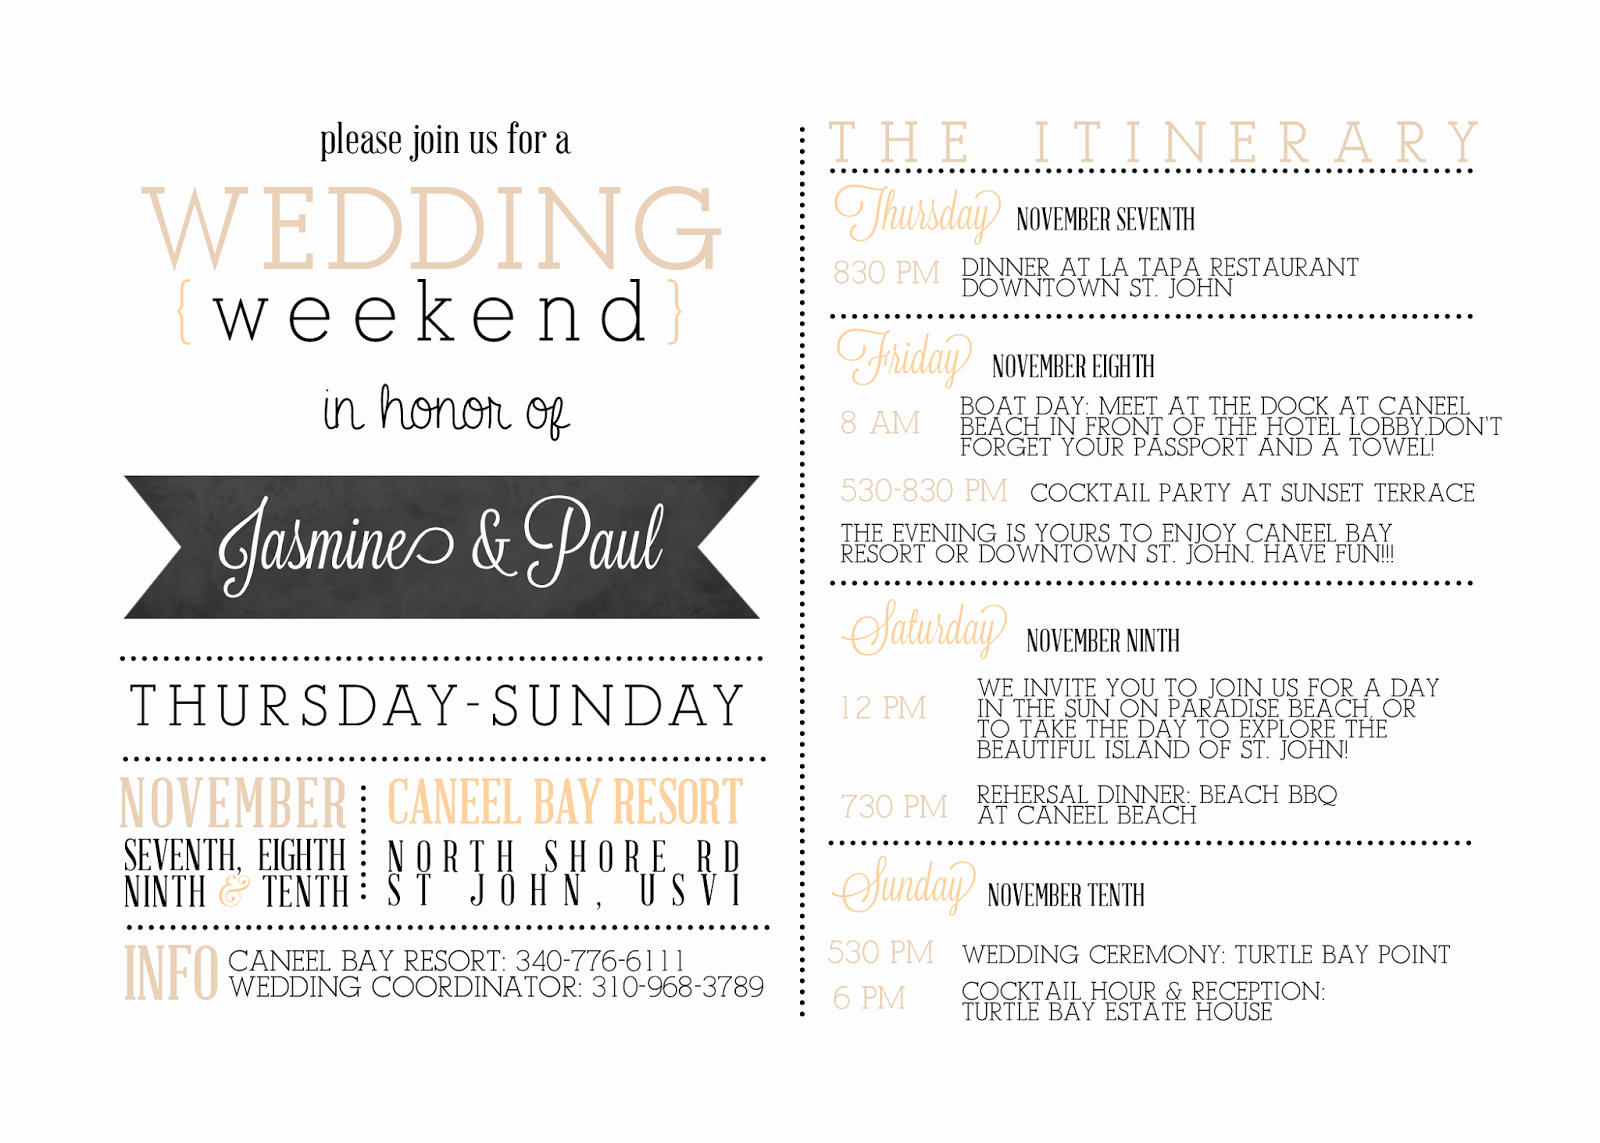 Destination Wedding Itinerary Template Lovely Pin On Wedding